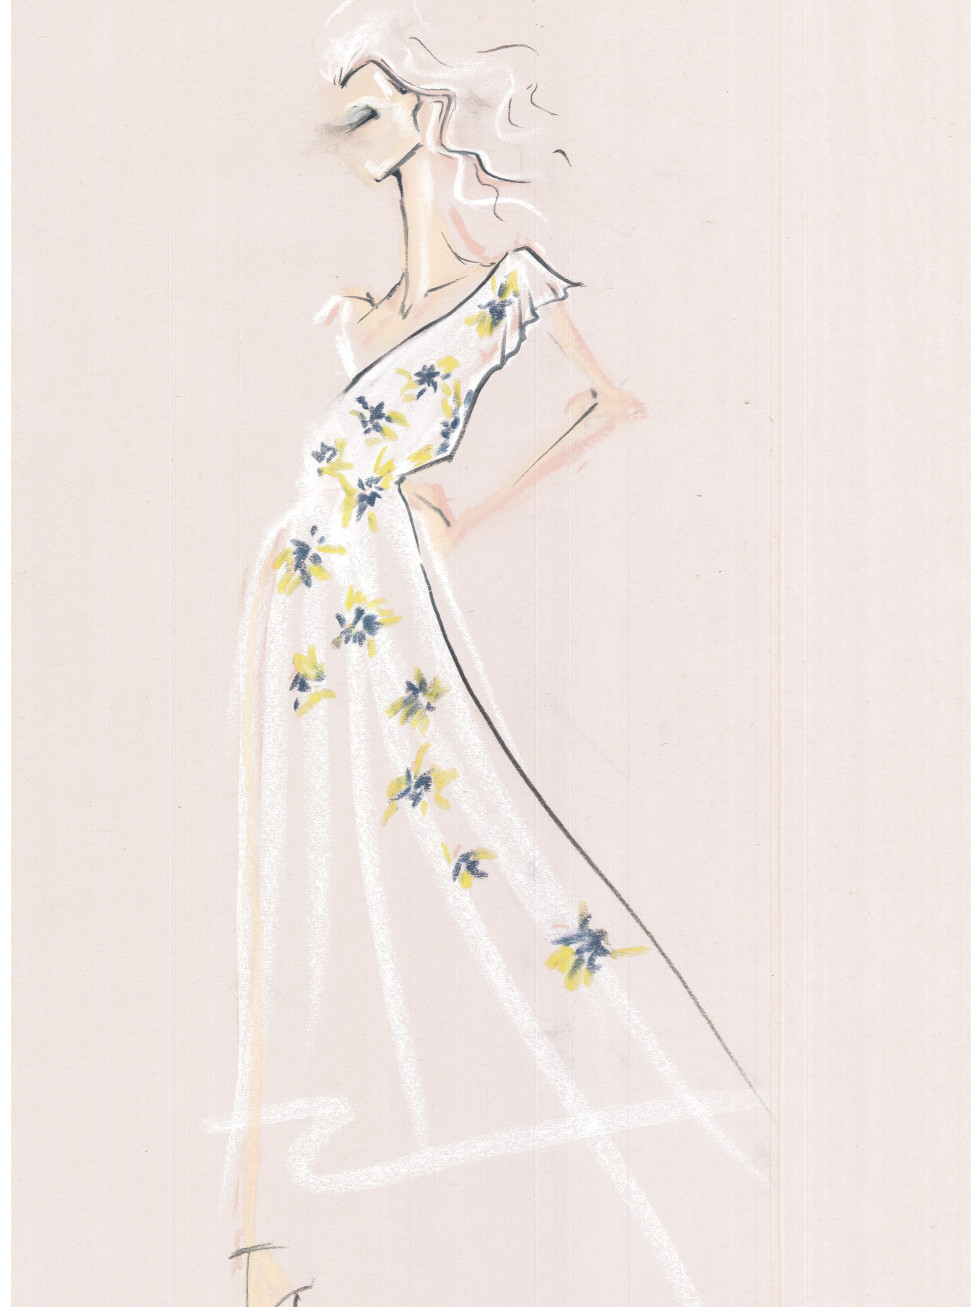 Joie spring 2016 New York Fashion Week inspiration sketch